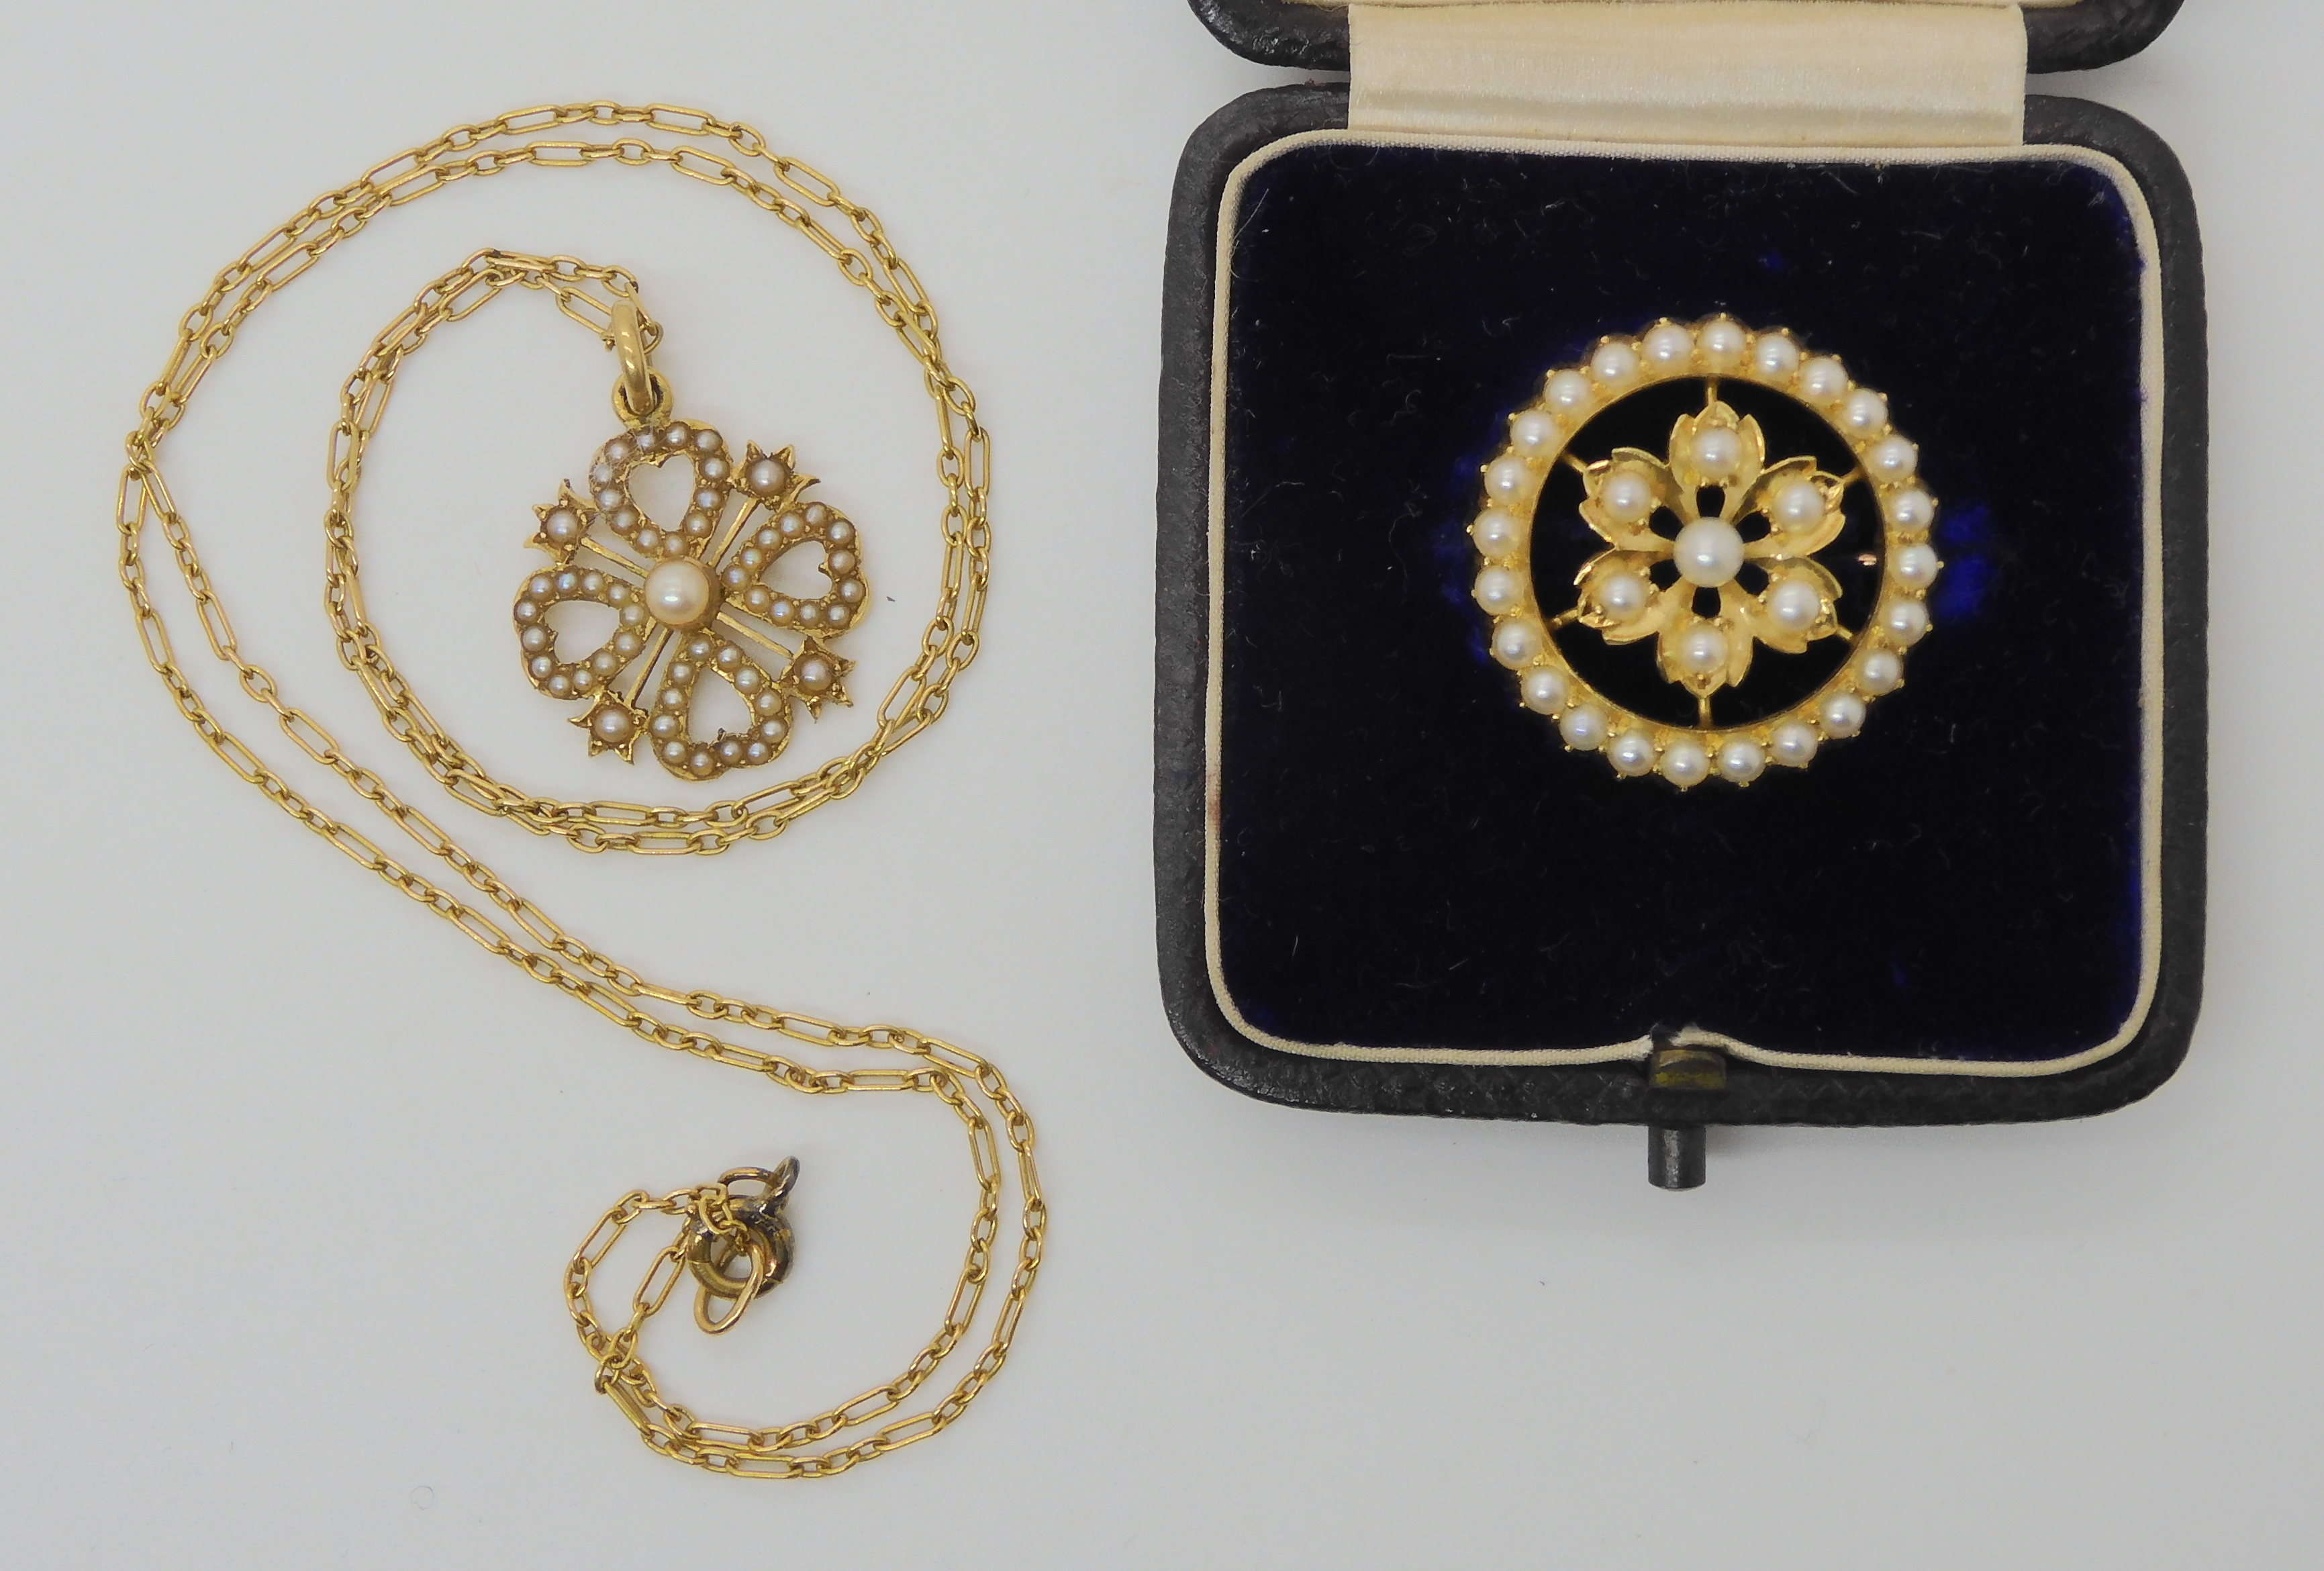 TWO VINTAGE PEARL SET ITEMS a brooch from the Goldsmiths & Silversmiths Co, in original fitted